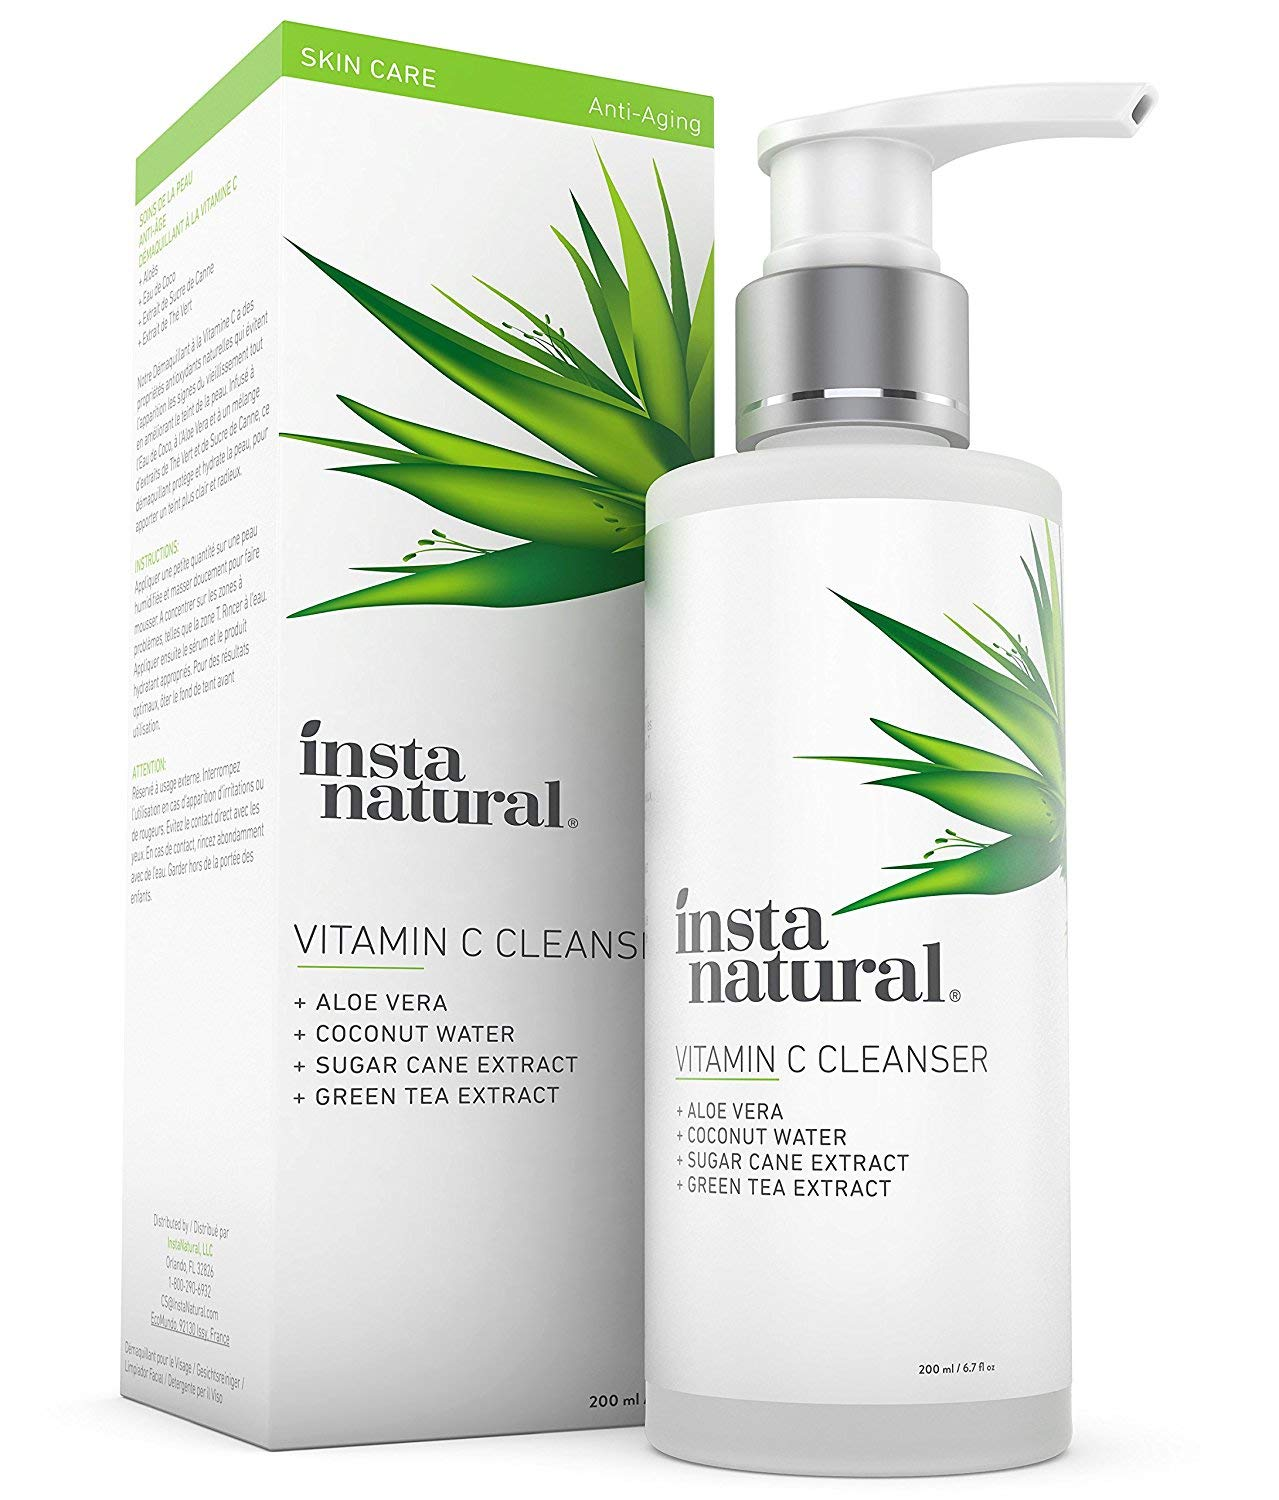 Vitamin C Facial Cleanser – Anti Aging, Breakout & Blemish, Wrinkle Reducing Gel Face Wash – Clear Pores on Oily, Dry & Sensitive Skin with Organic & Natural Ingredients – InstaNatural – 6.7 oz